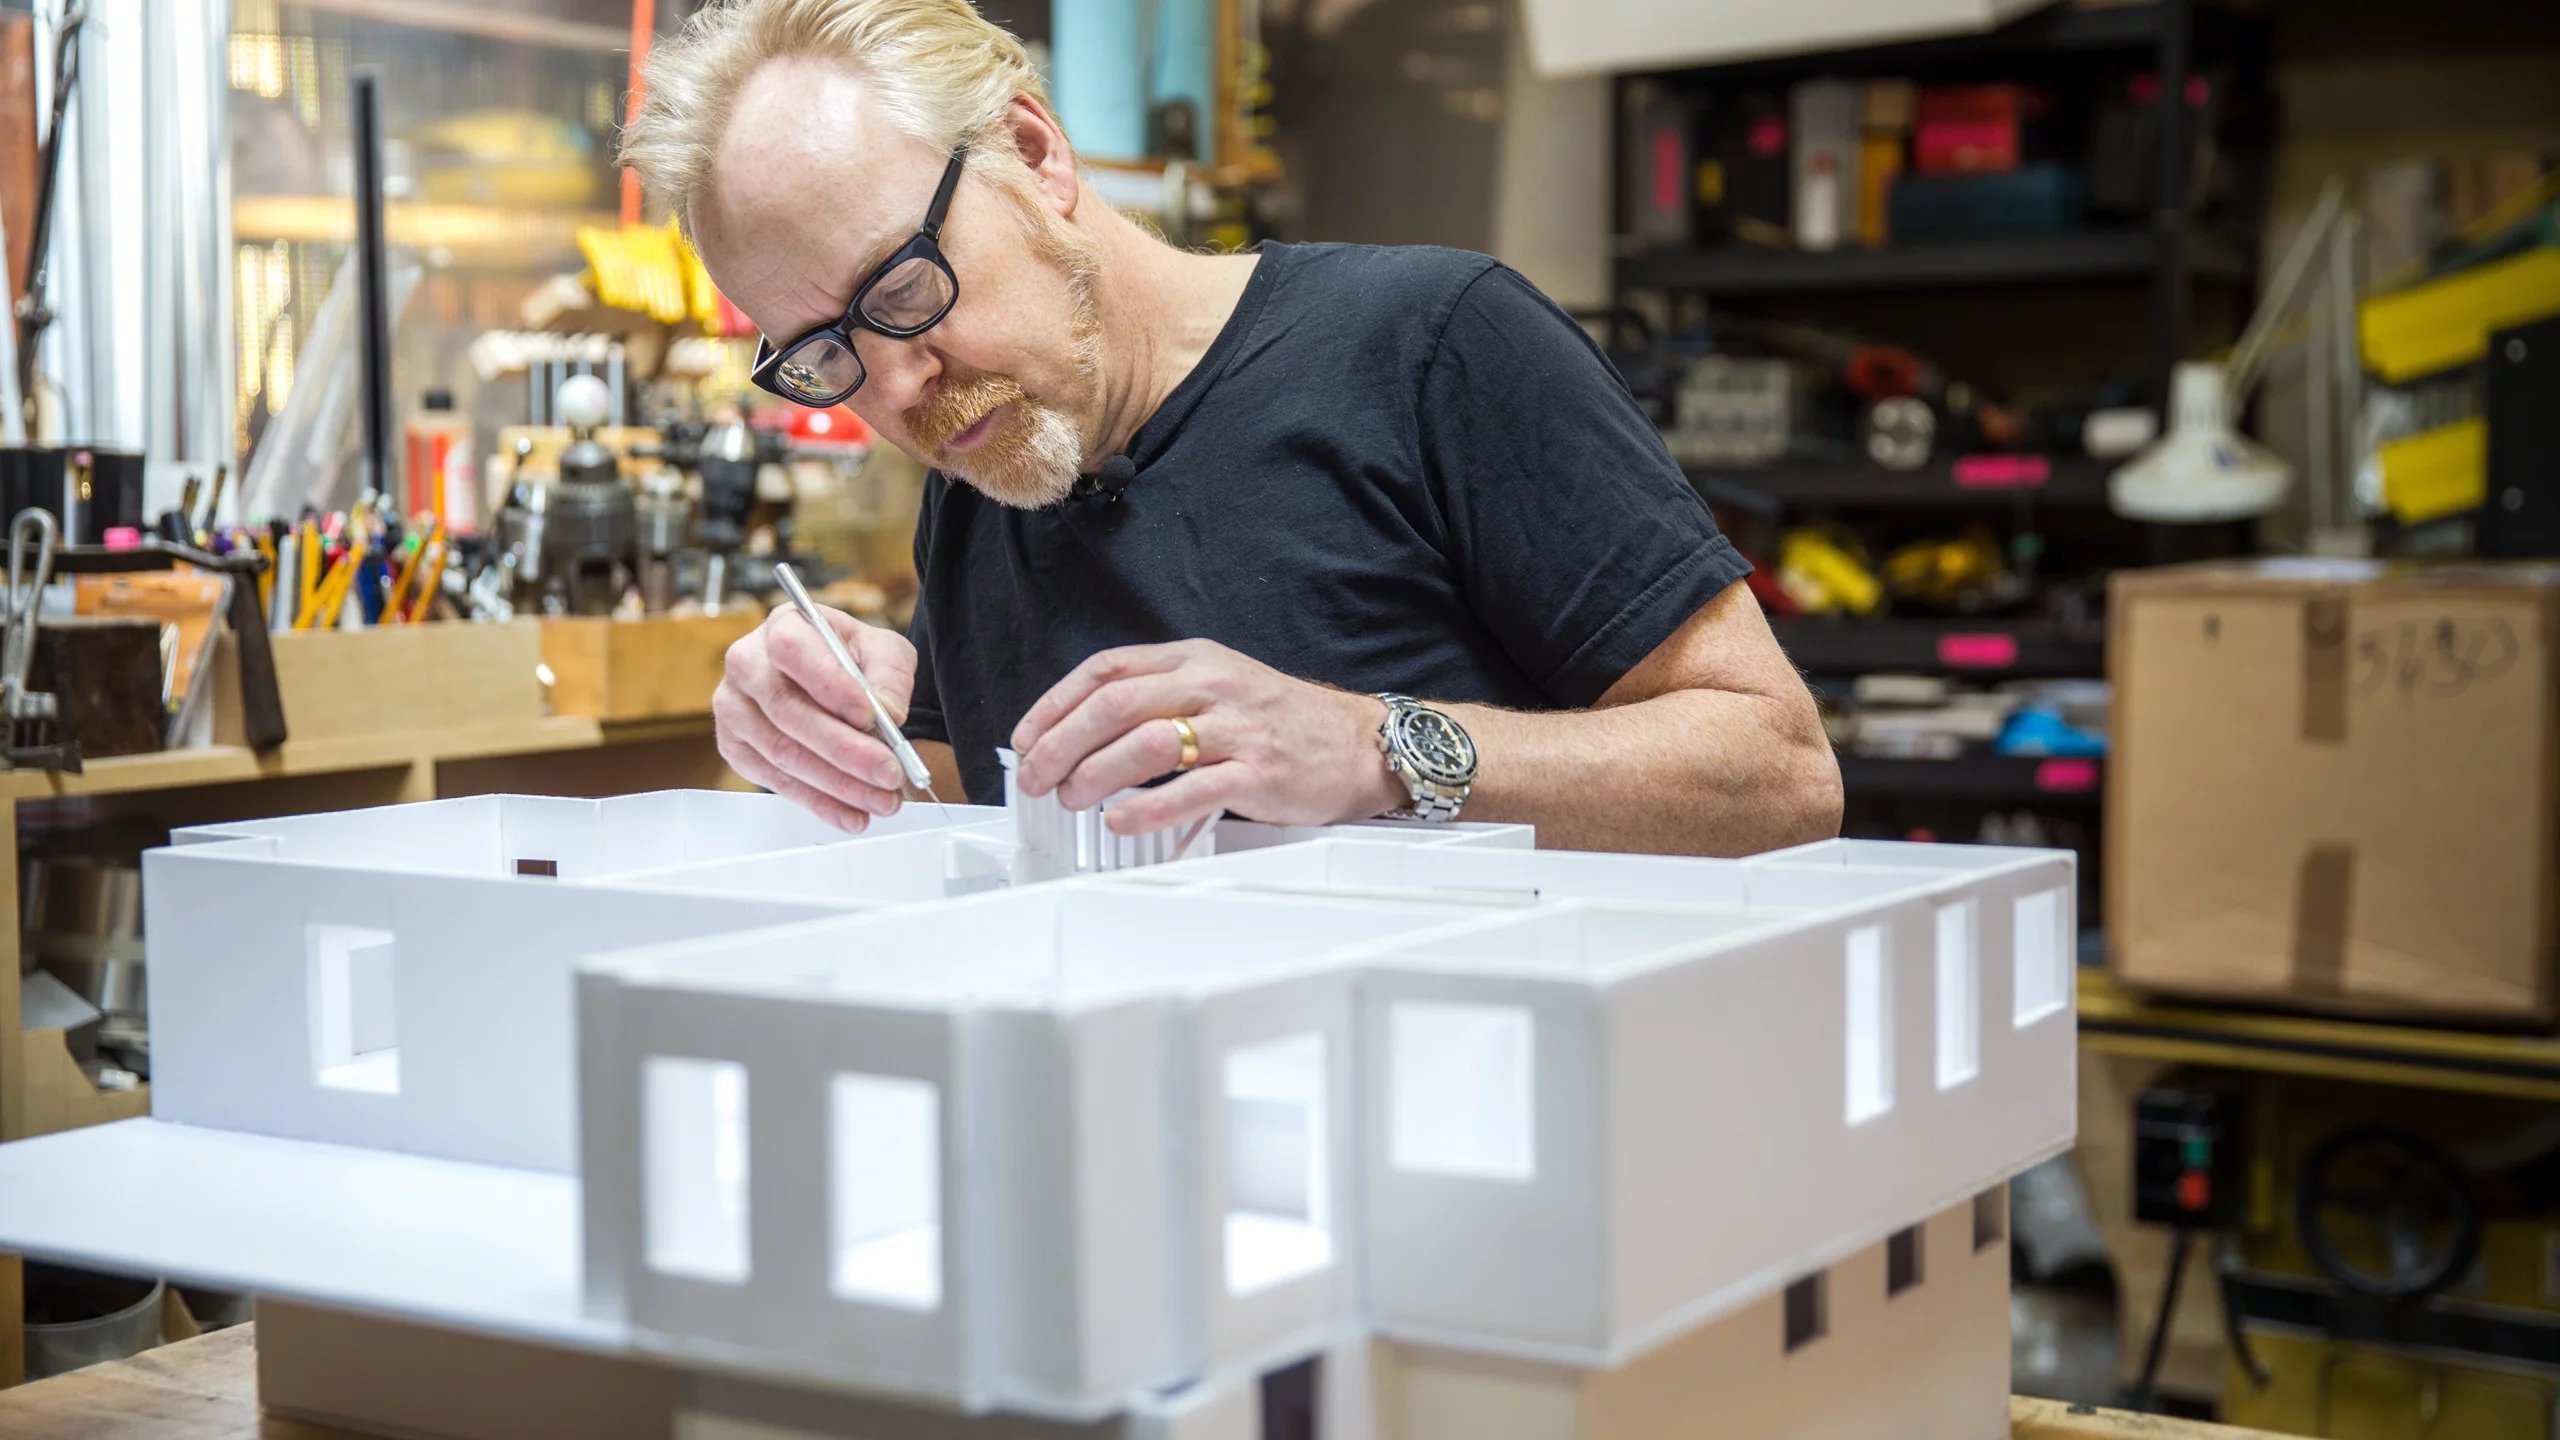 Building a Foamcore House by Adam Savage